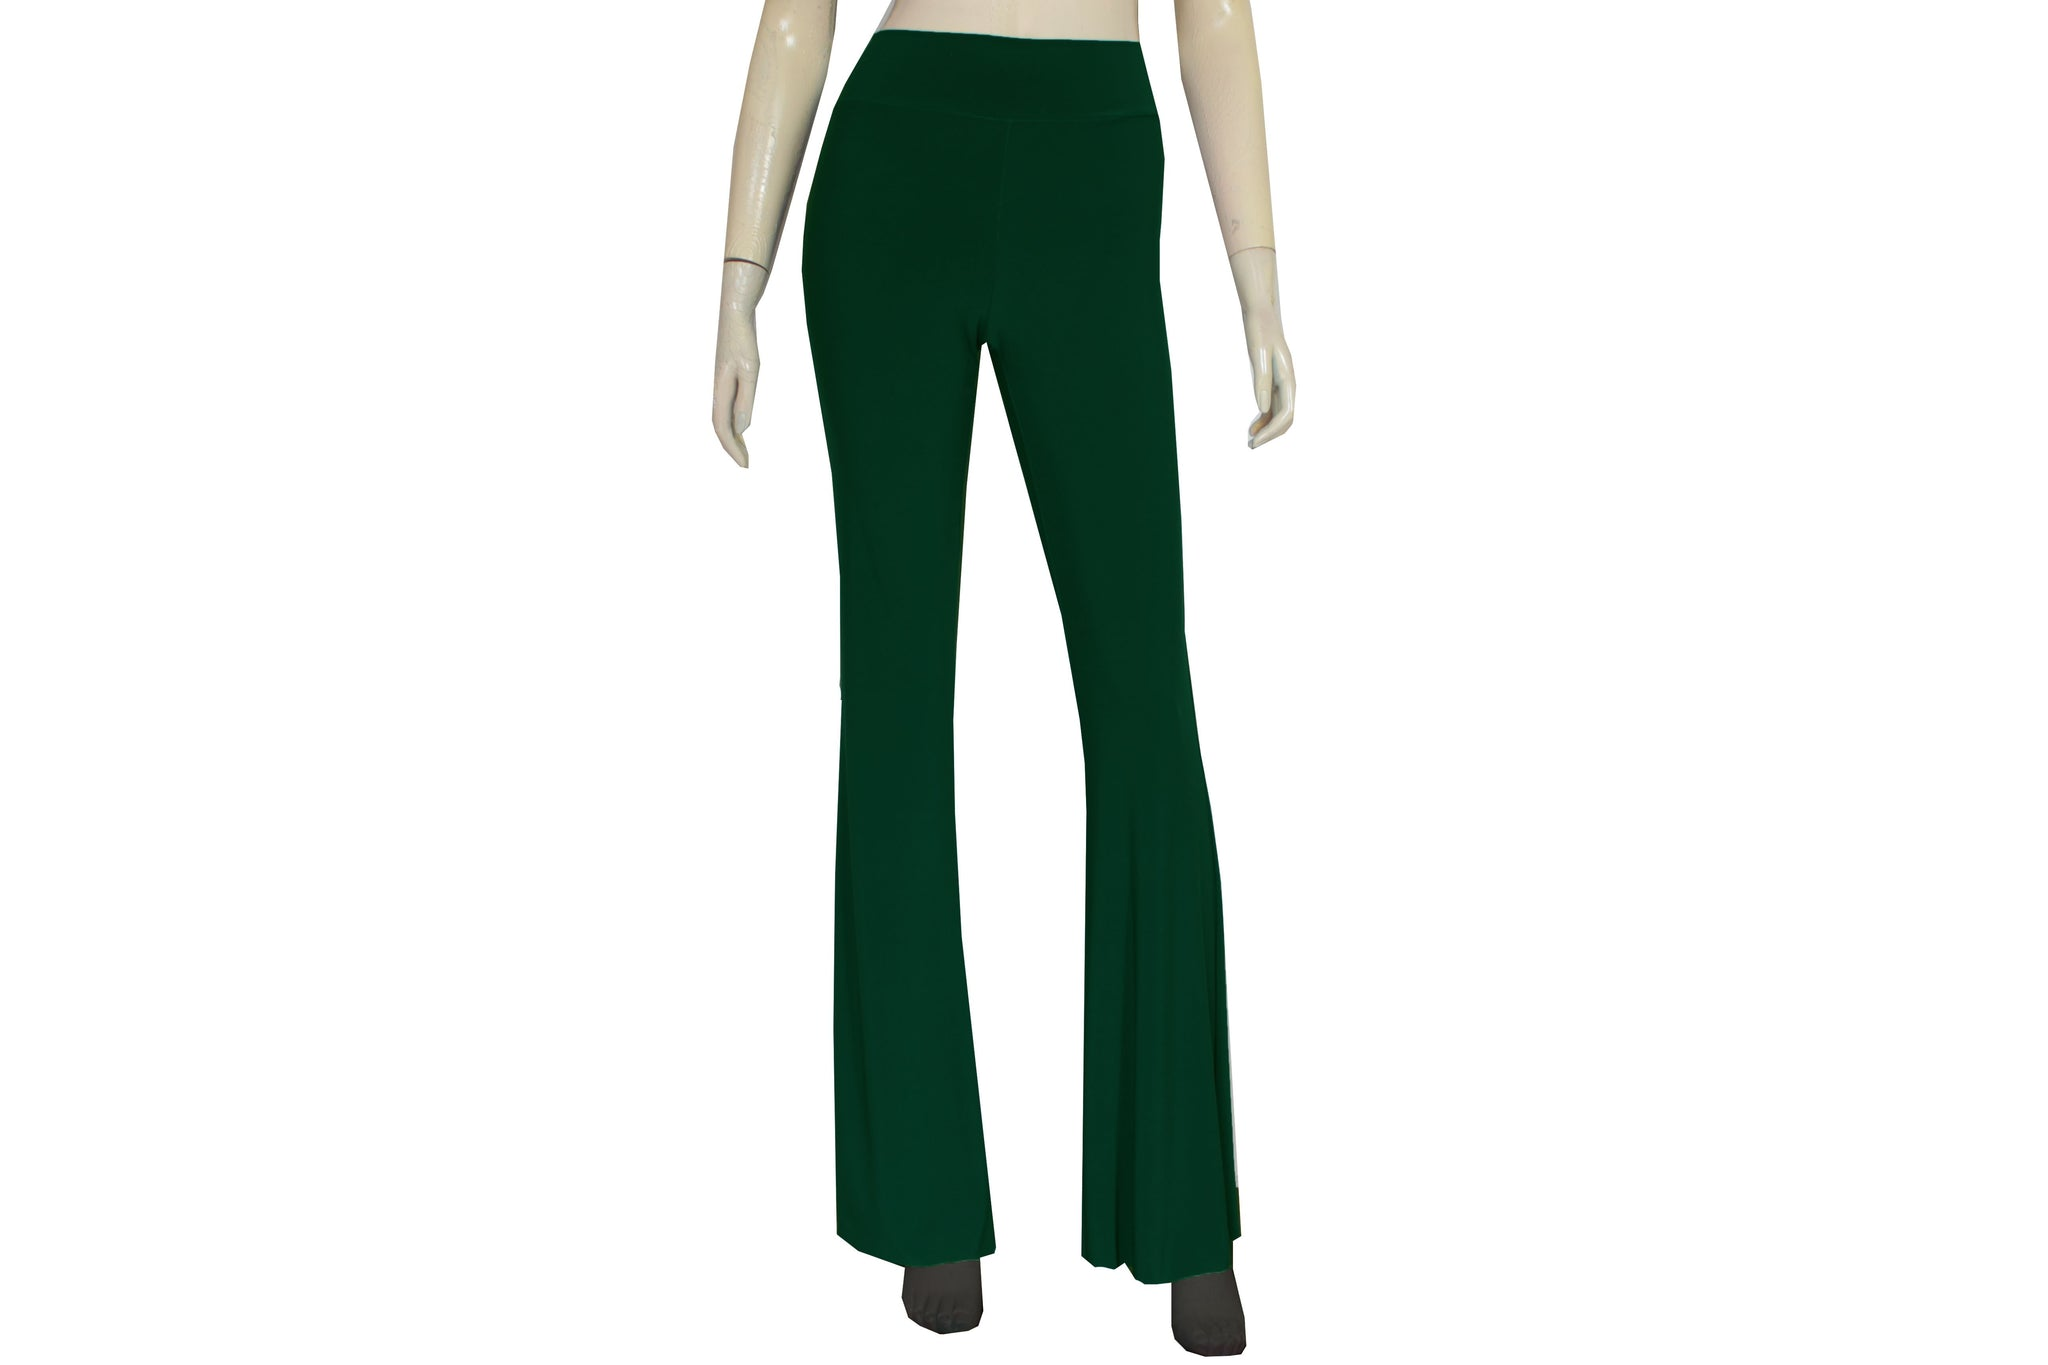 2252b0f4592c4 Flare pants Dark green bell bottom tights High waist yoga pants Plus size  pants Slim leg